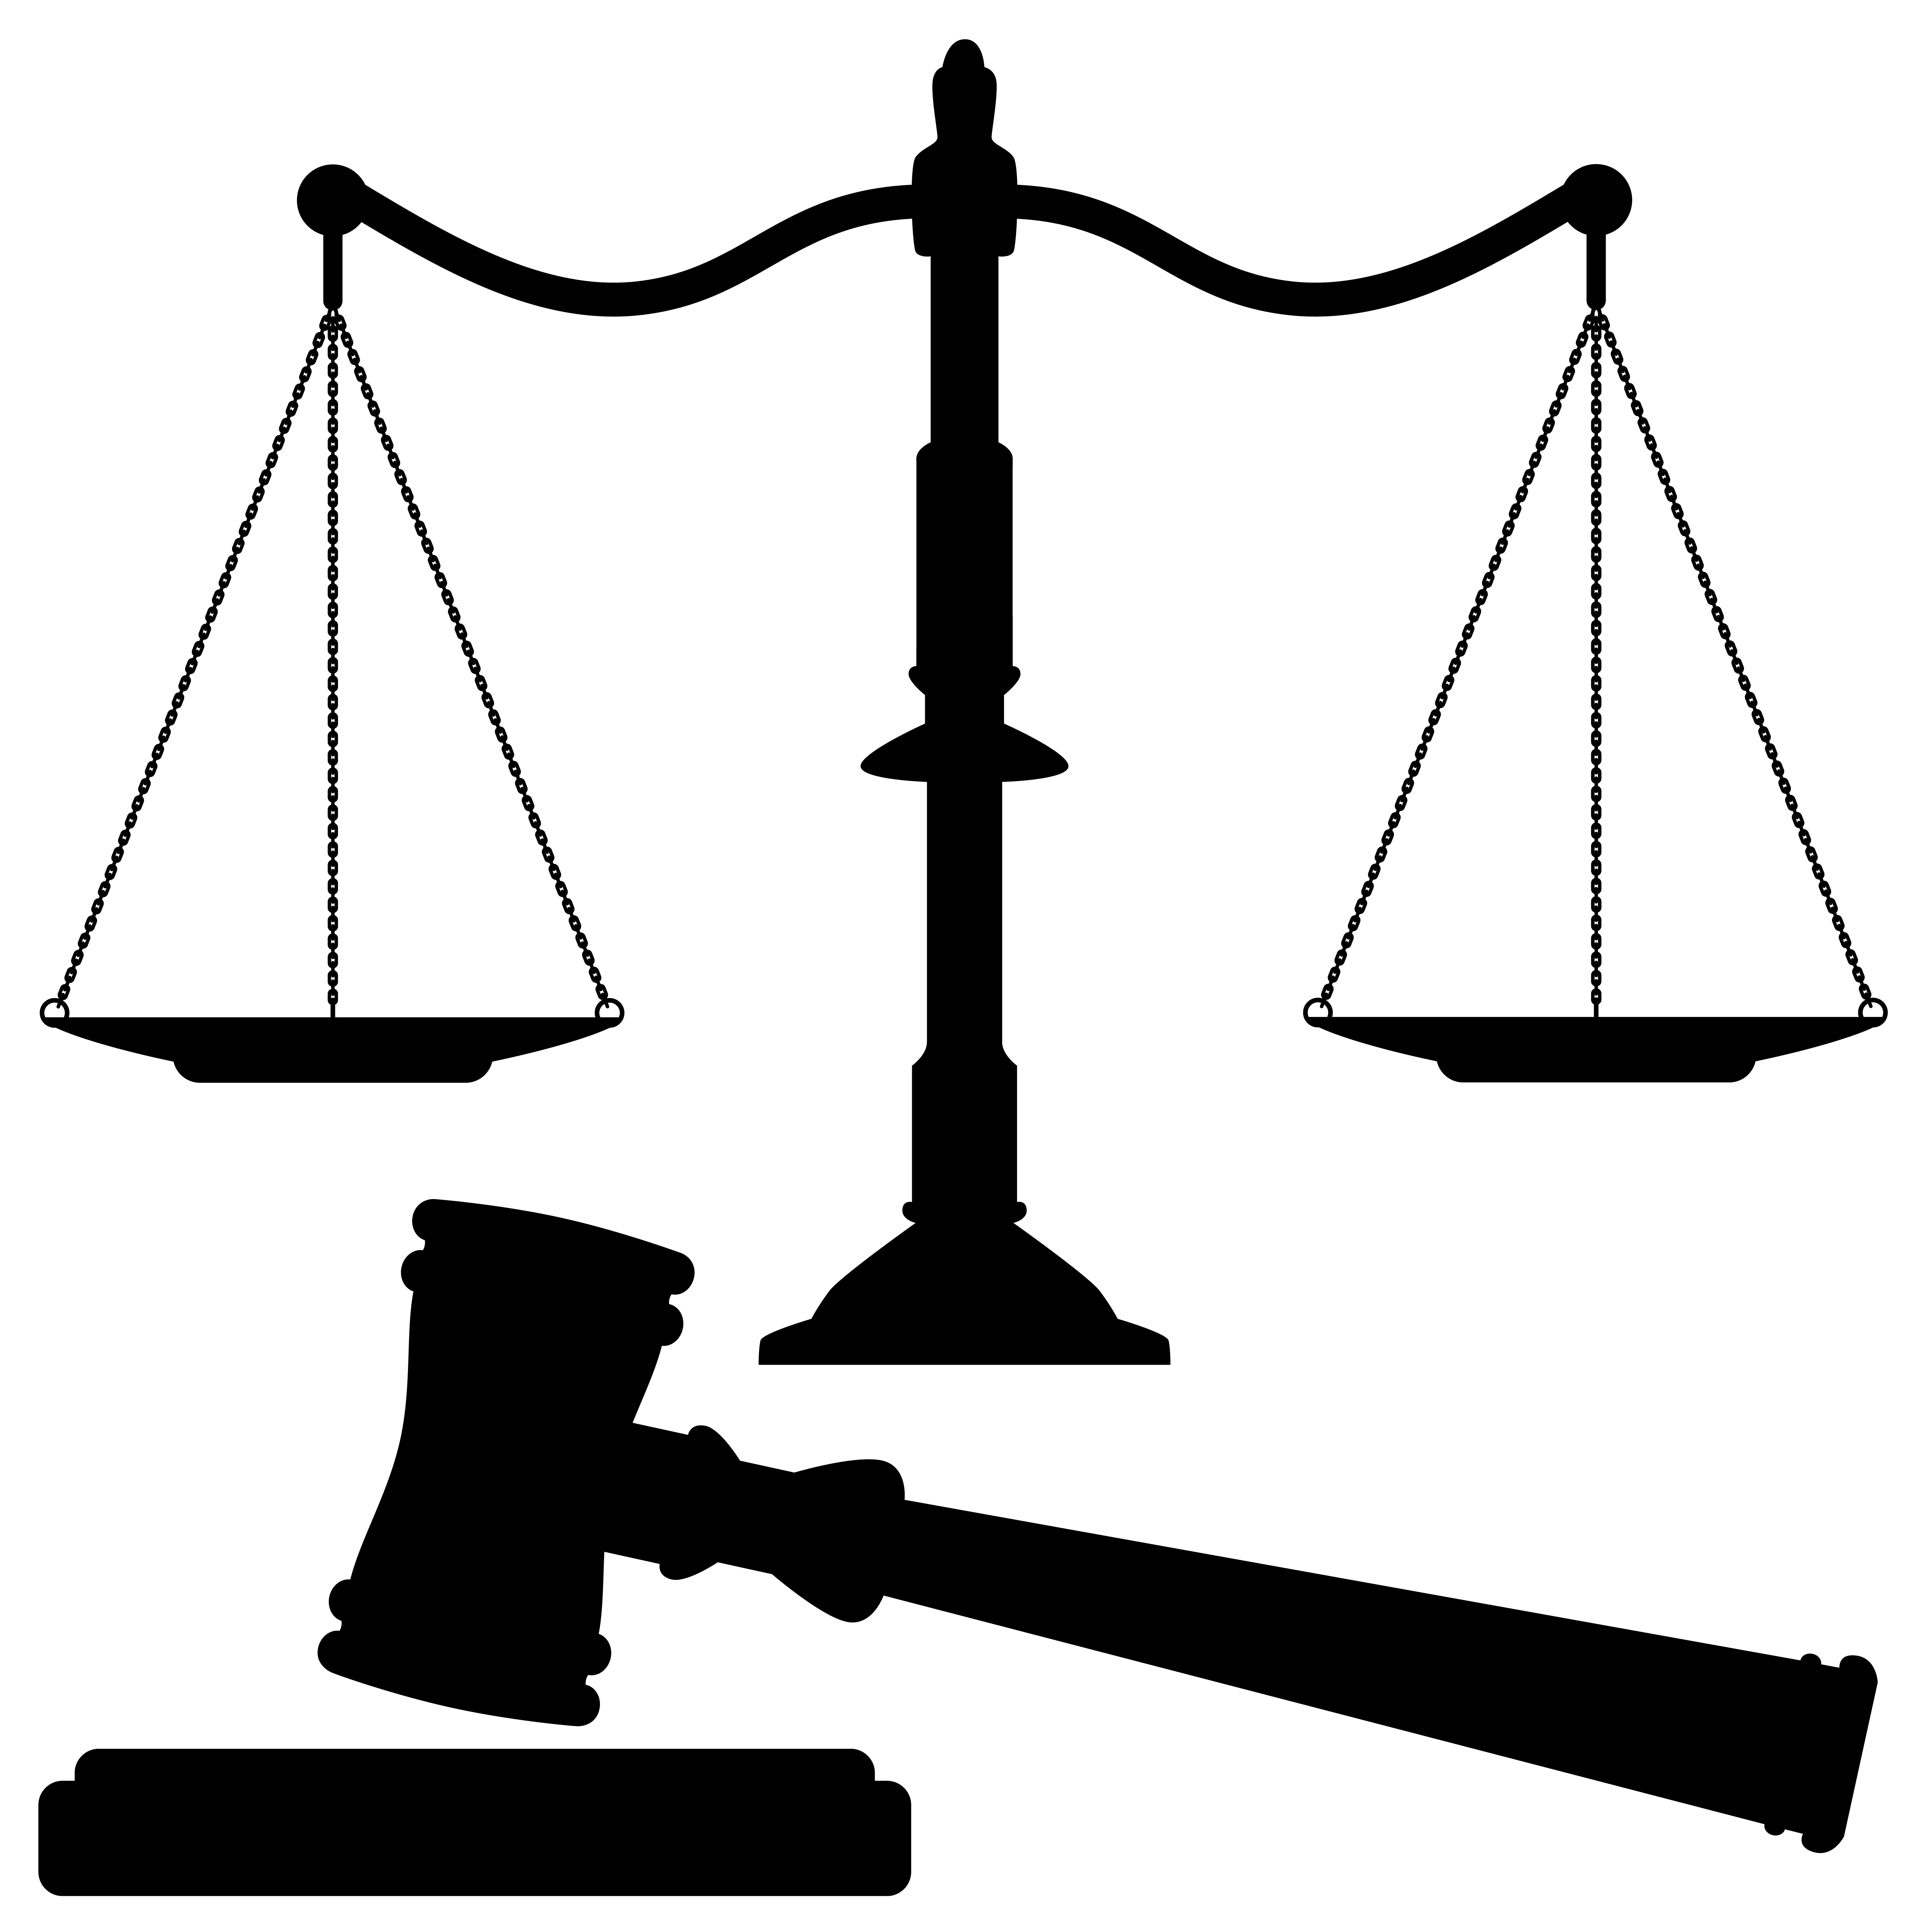 2122 Justice free clipart.